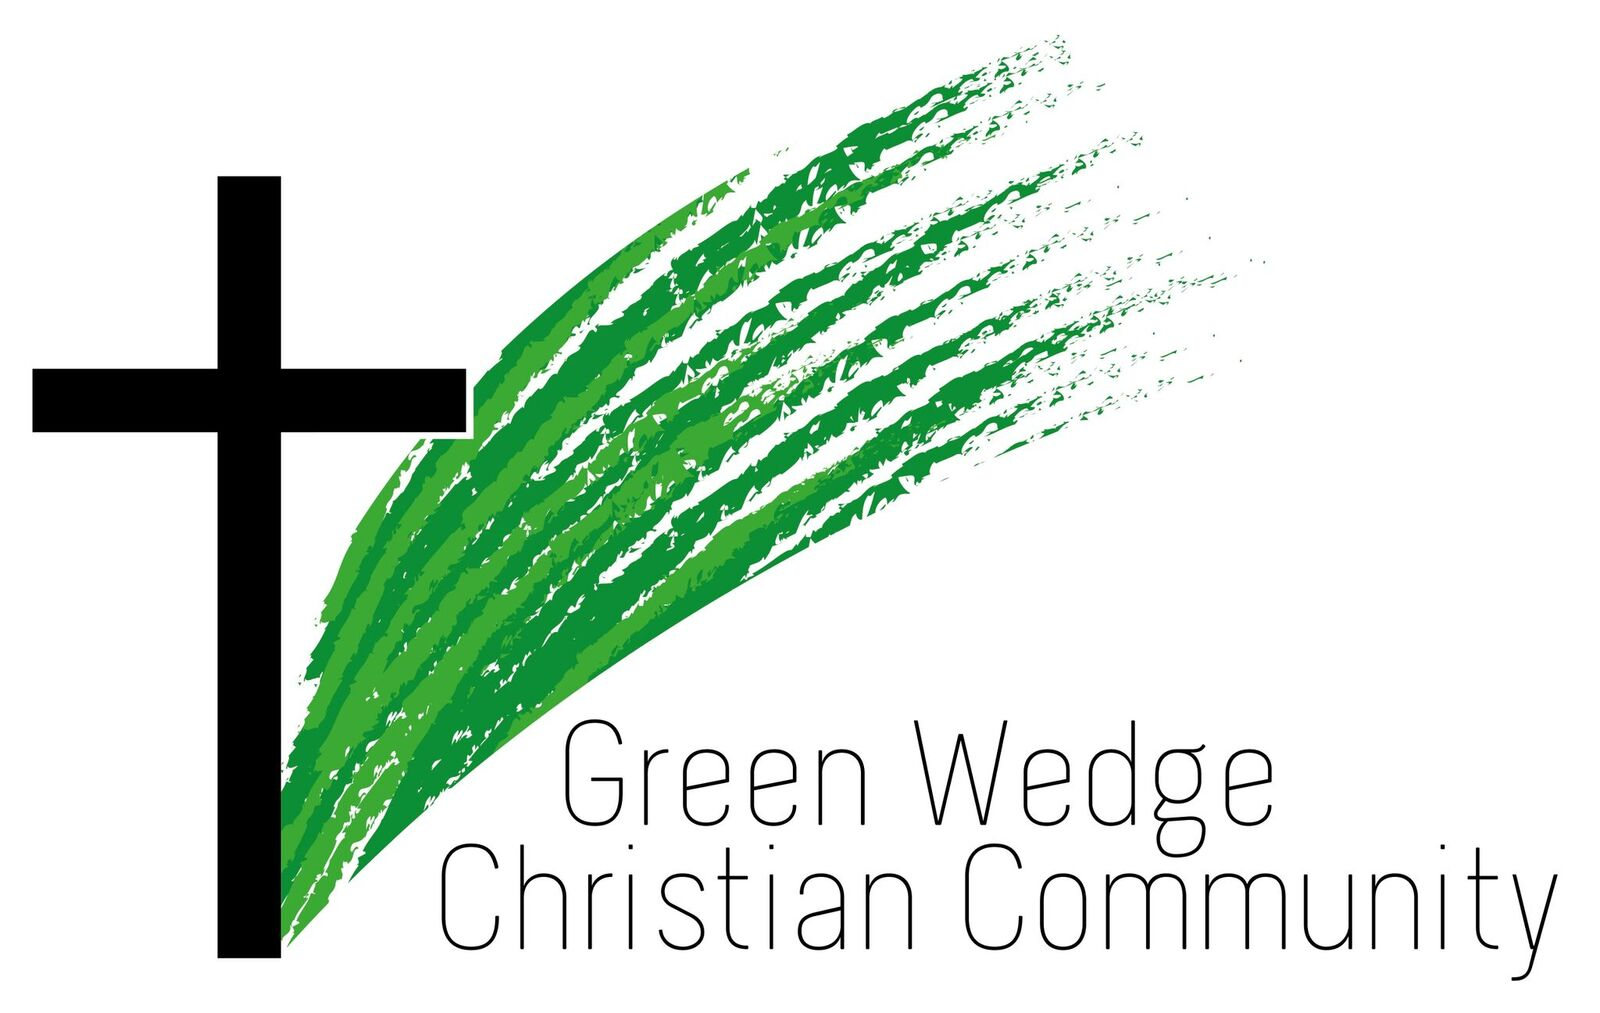 Green Wedge Christian Community